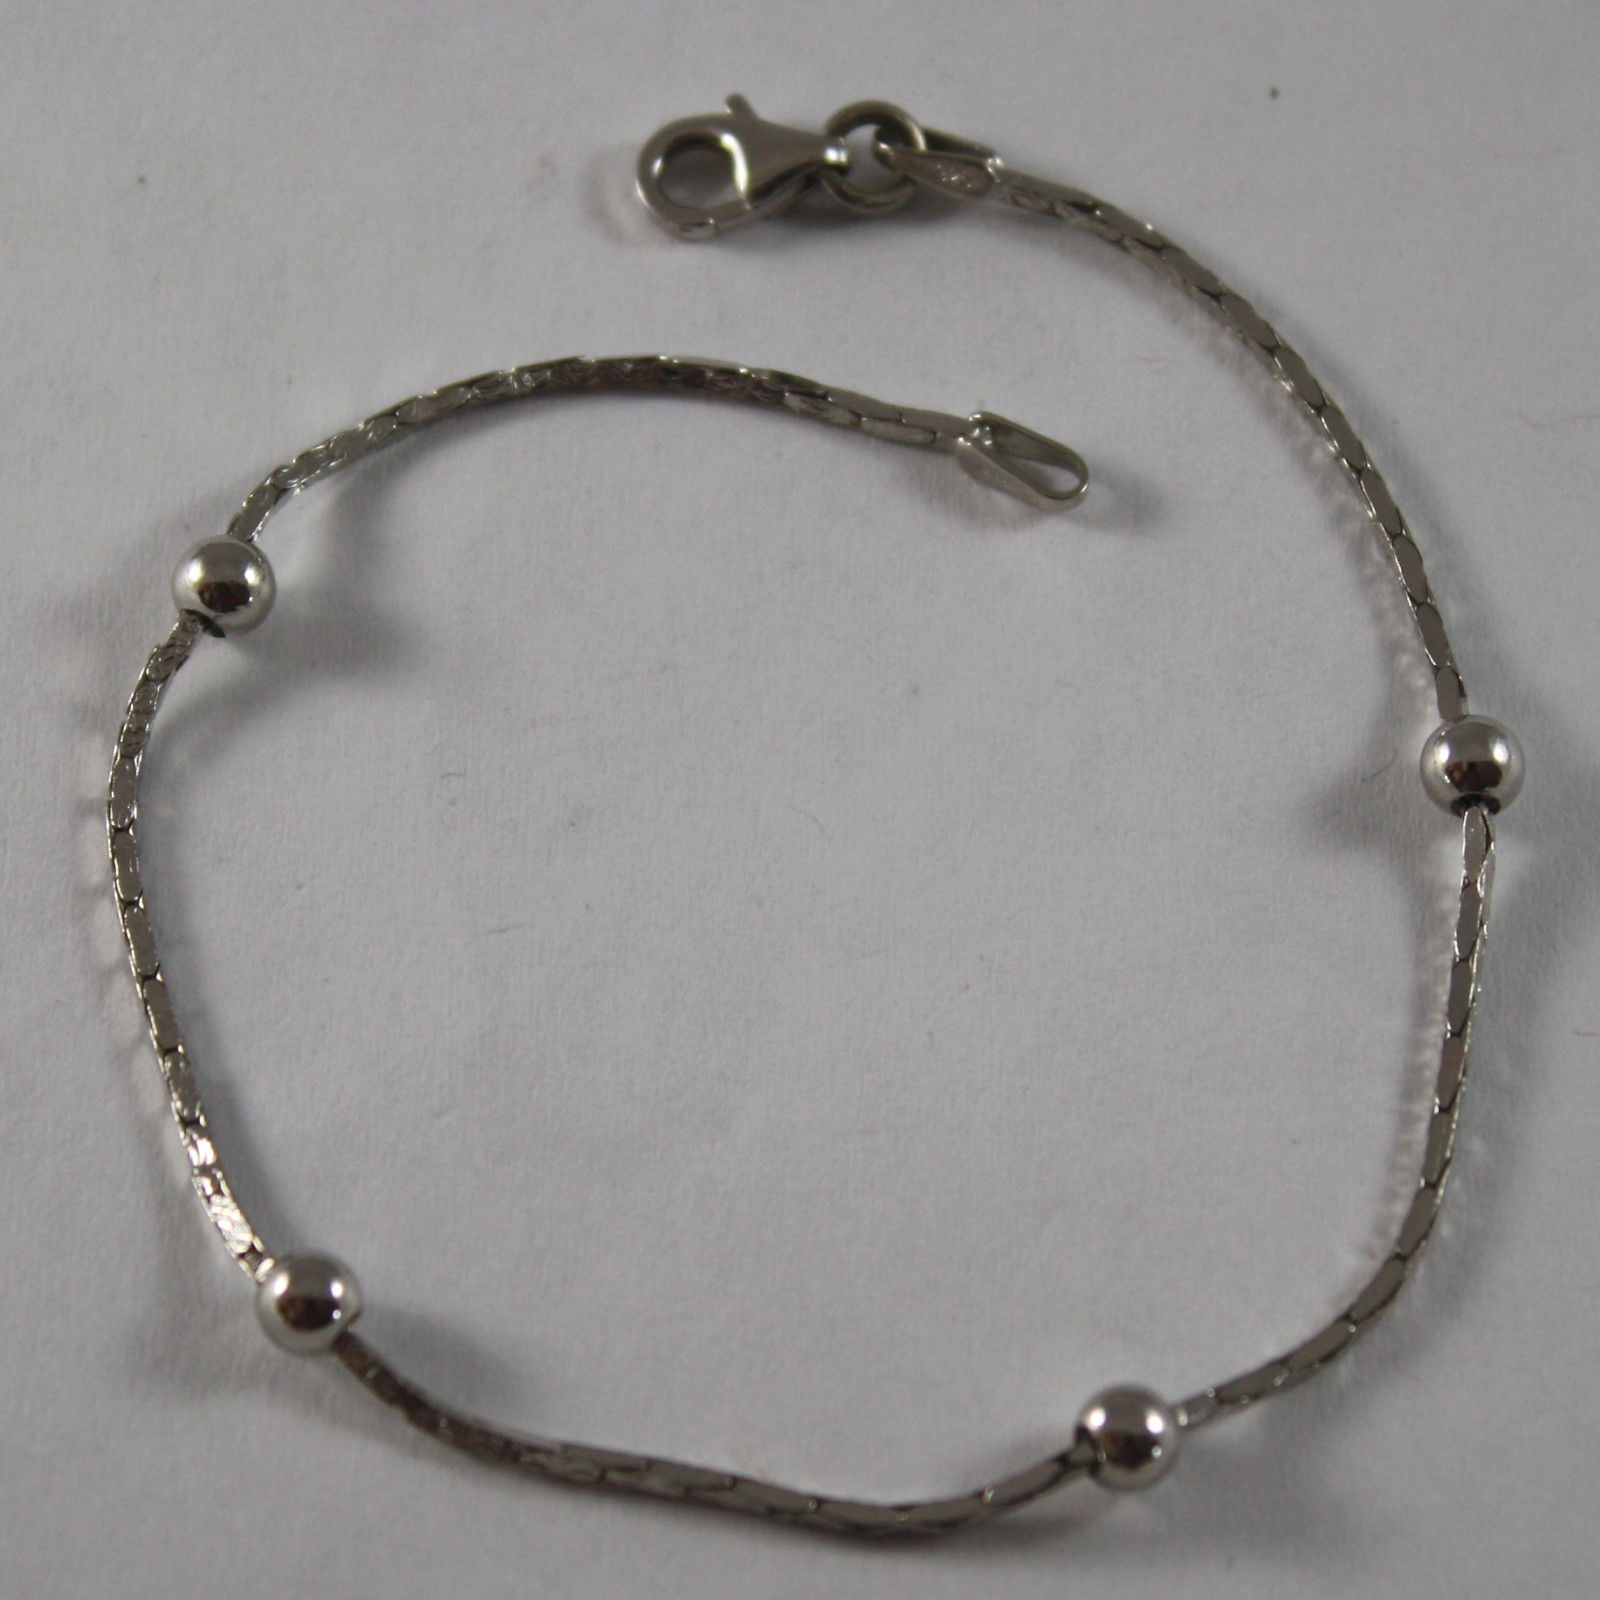 .925 RHODIUM SILVER BRACELET WITH SMALL SPHERE